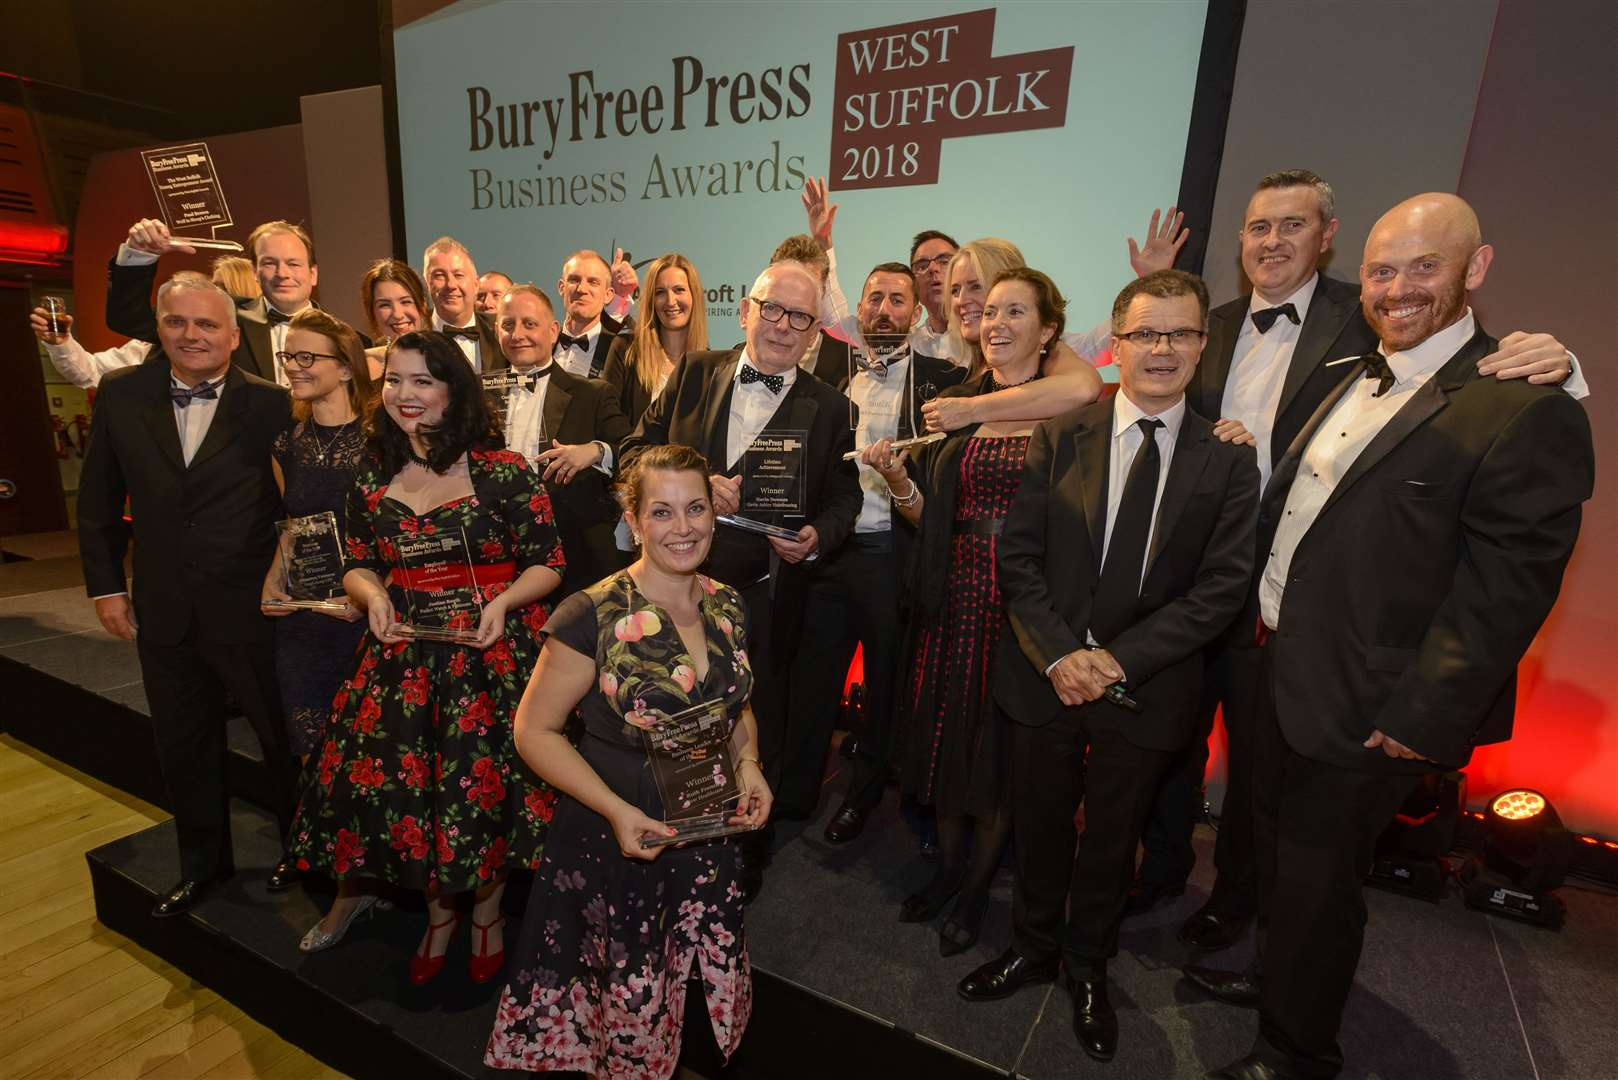 Winners of the Bury Free Press Business Awards 2018. Picture: Mark Bullimore Photography.